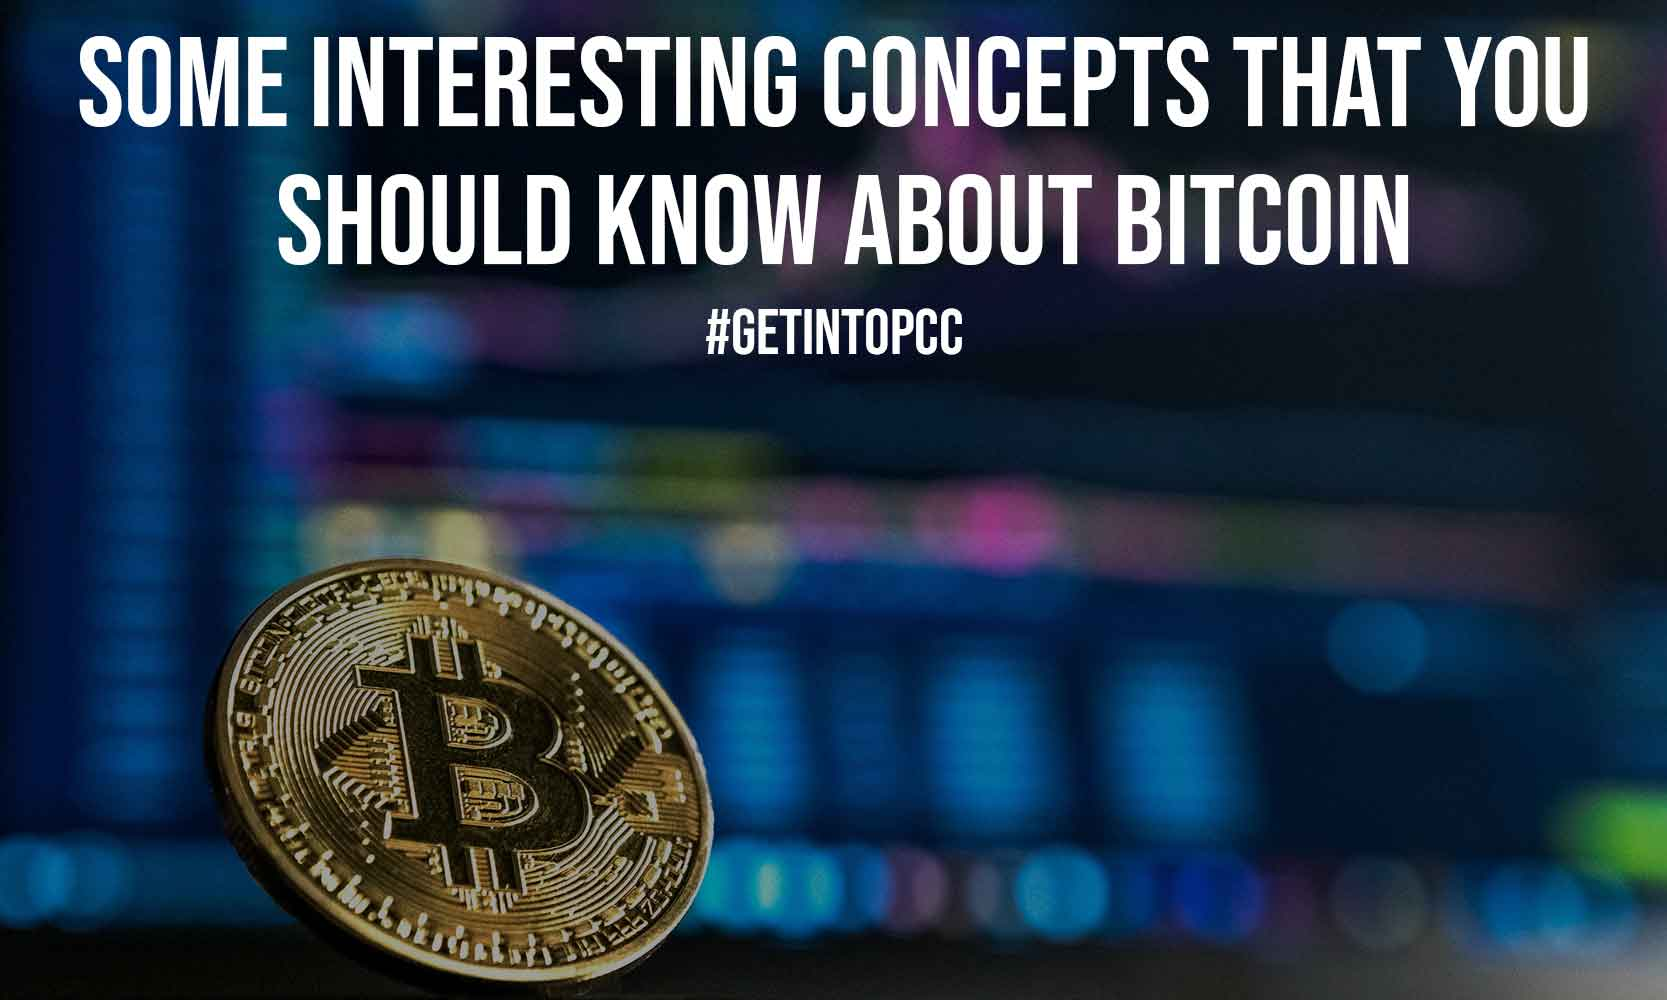 Some Interesting Concepts That You Should Know About Bitcoin